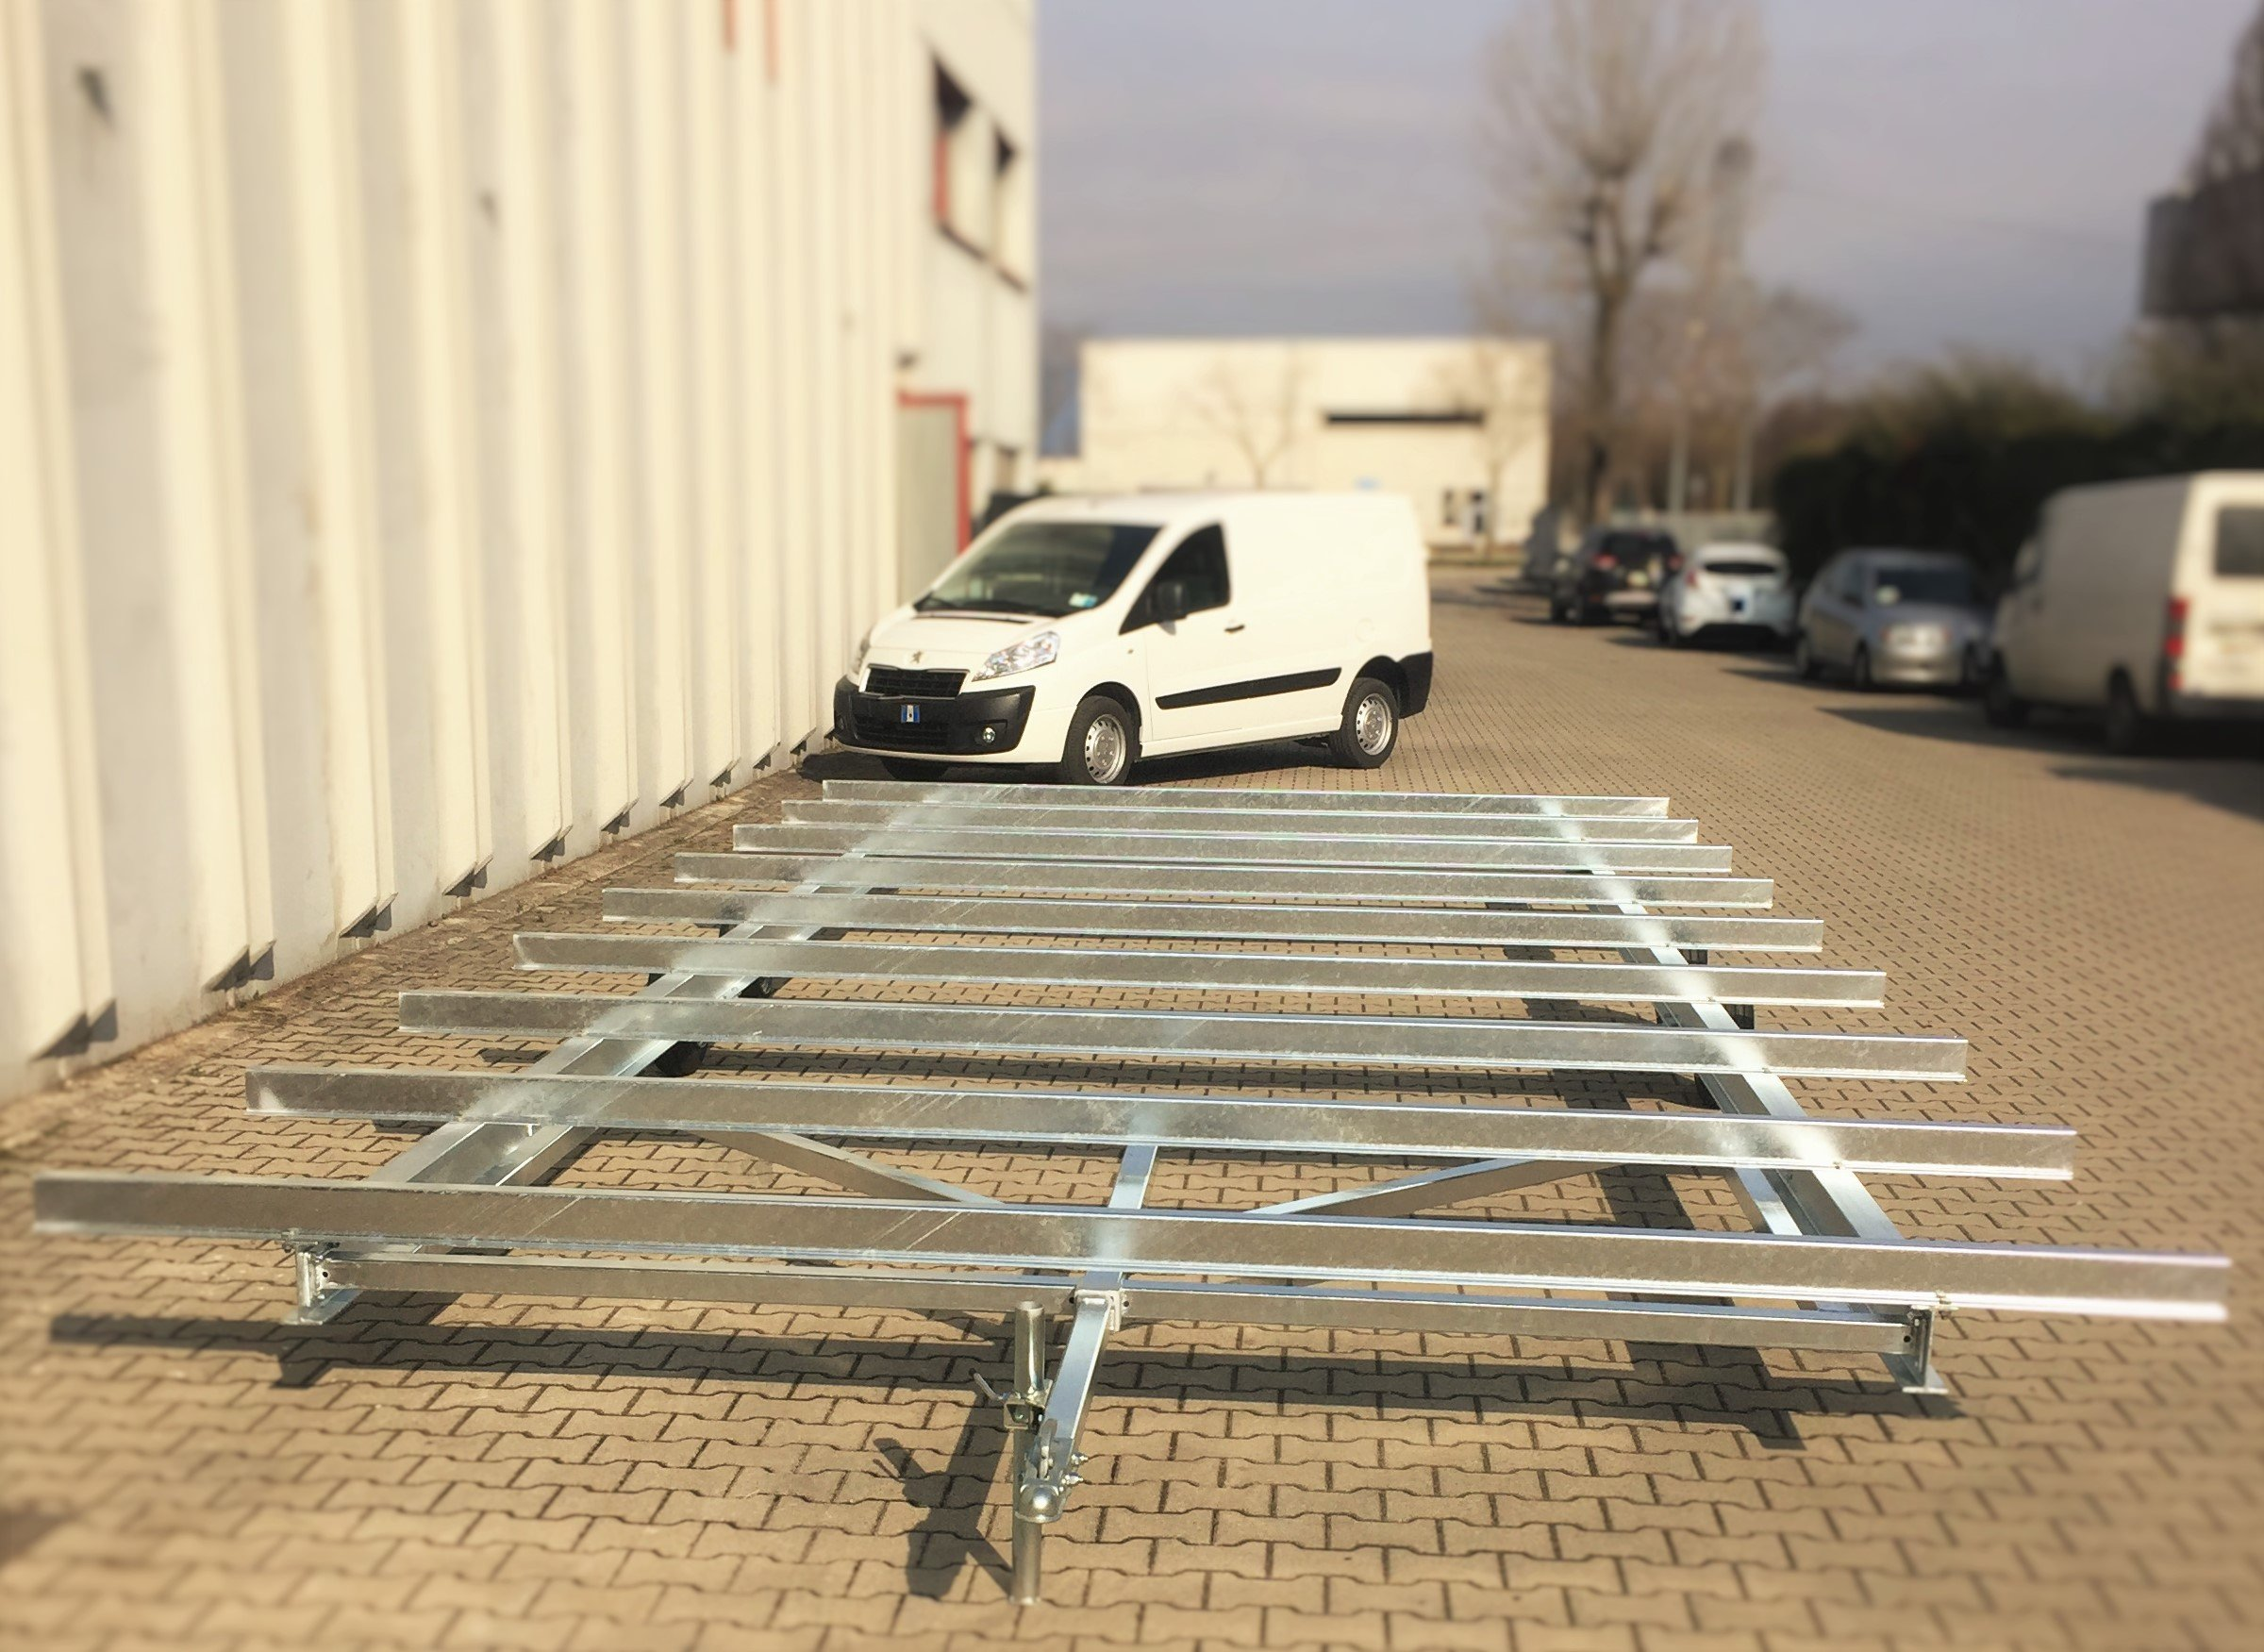 Chassis for mobile home, chassis for caravan